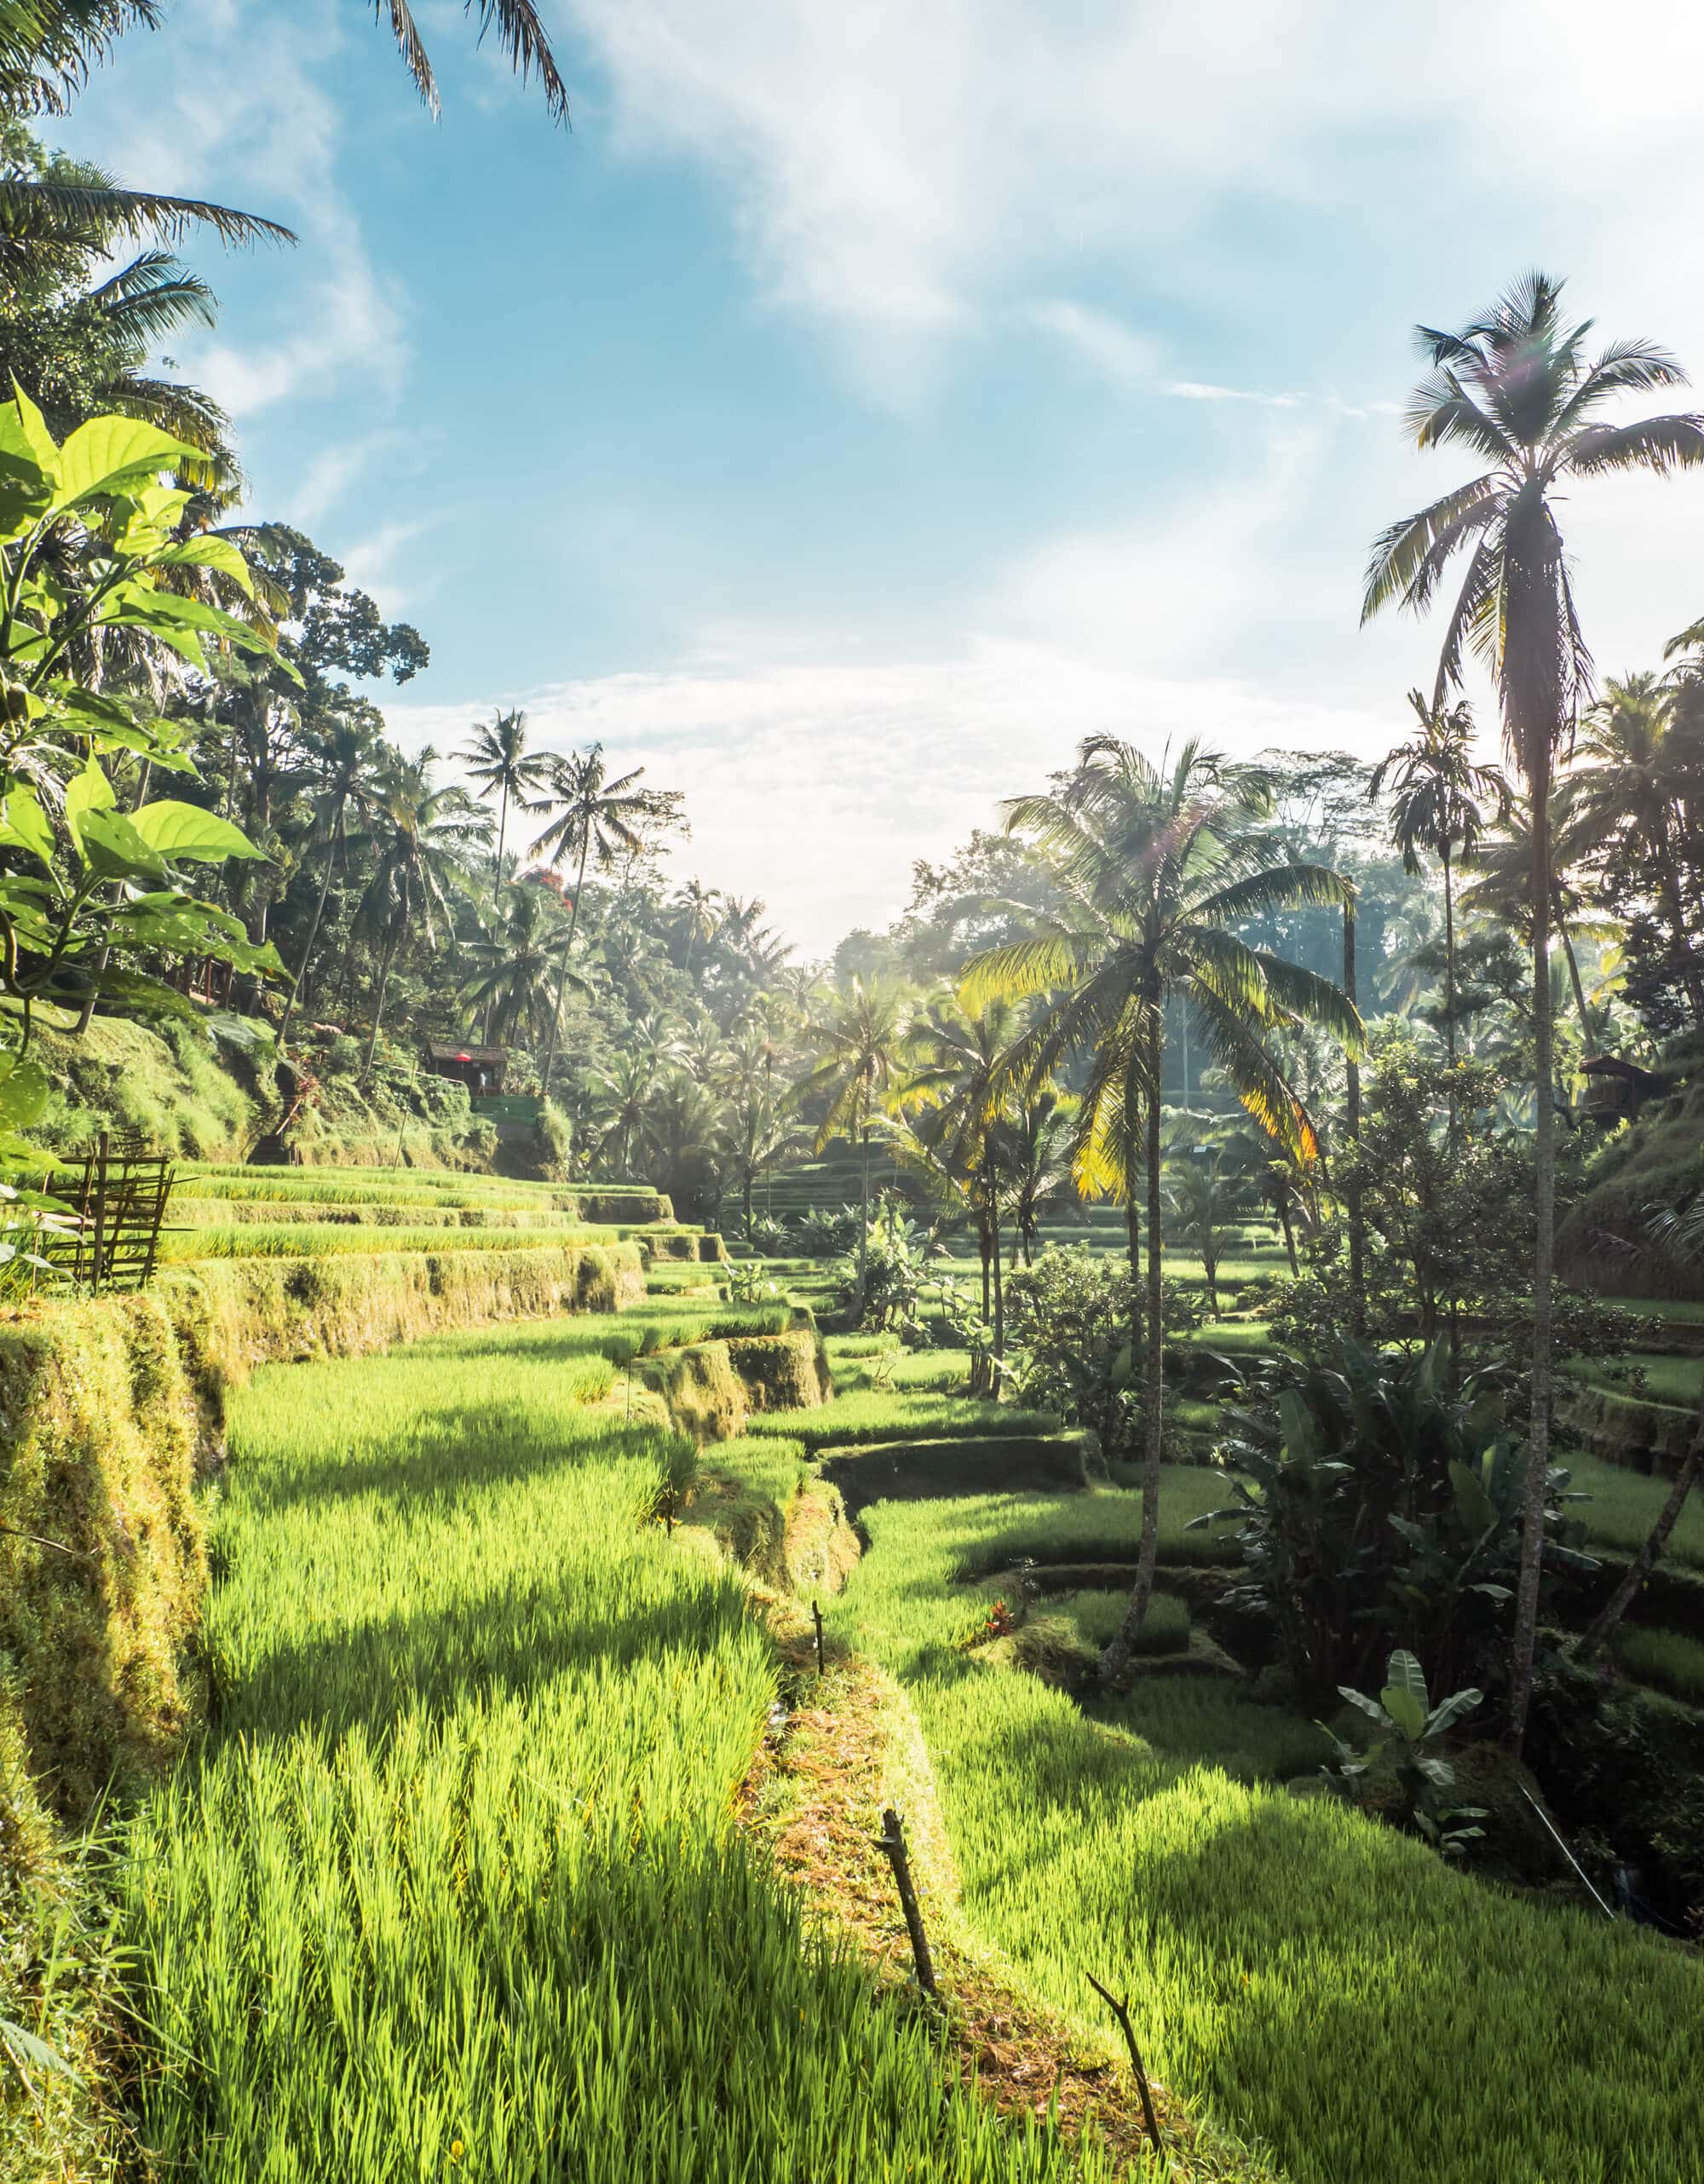 The Instafamous sunrise photo location in Tegalalang Rice Terrace, Ubud